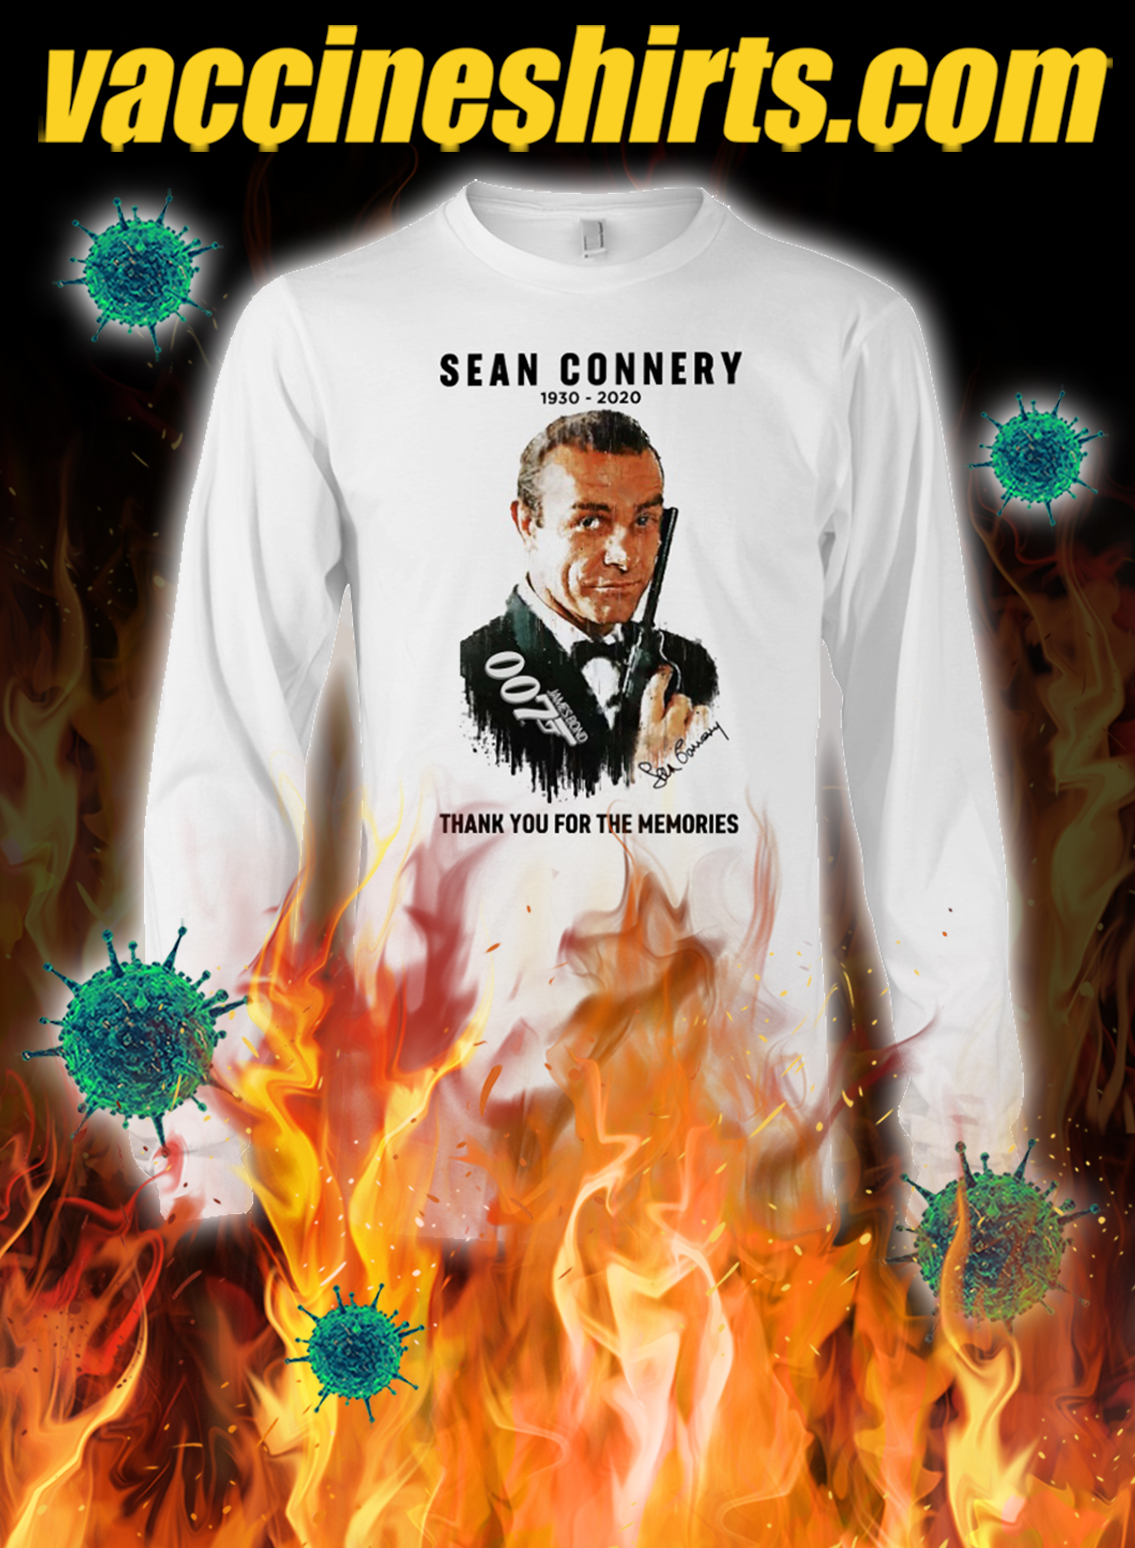 Sean connery 1930 2020 thank you for the memories longsleeve tee